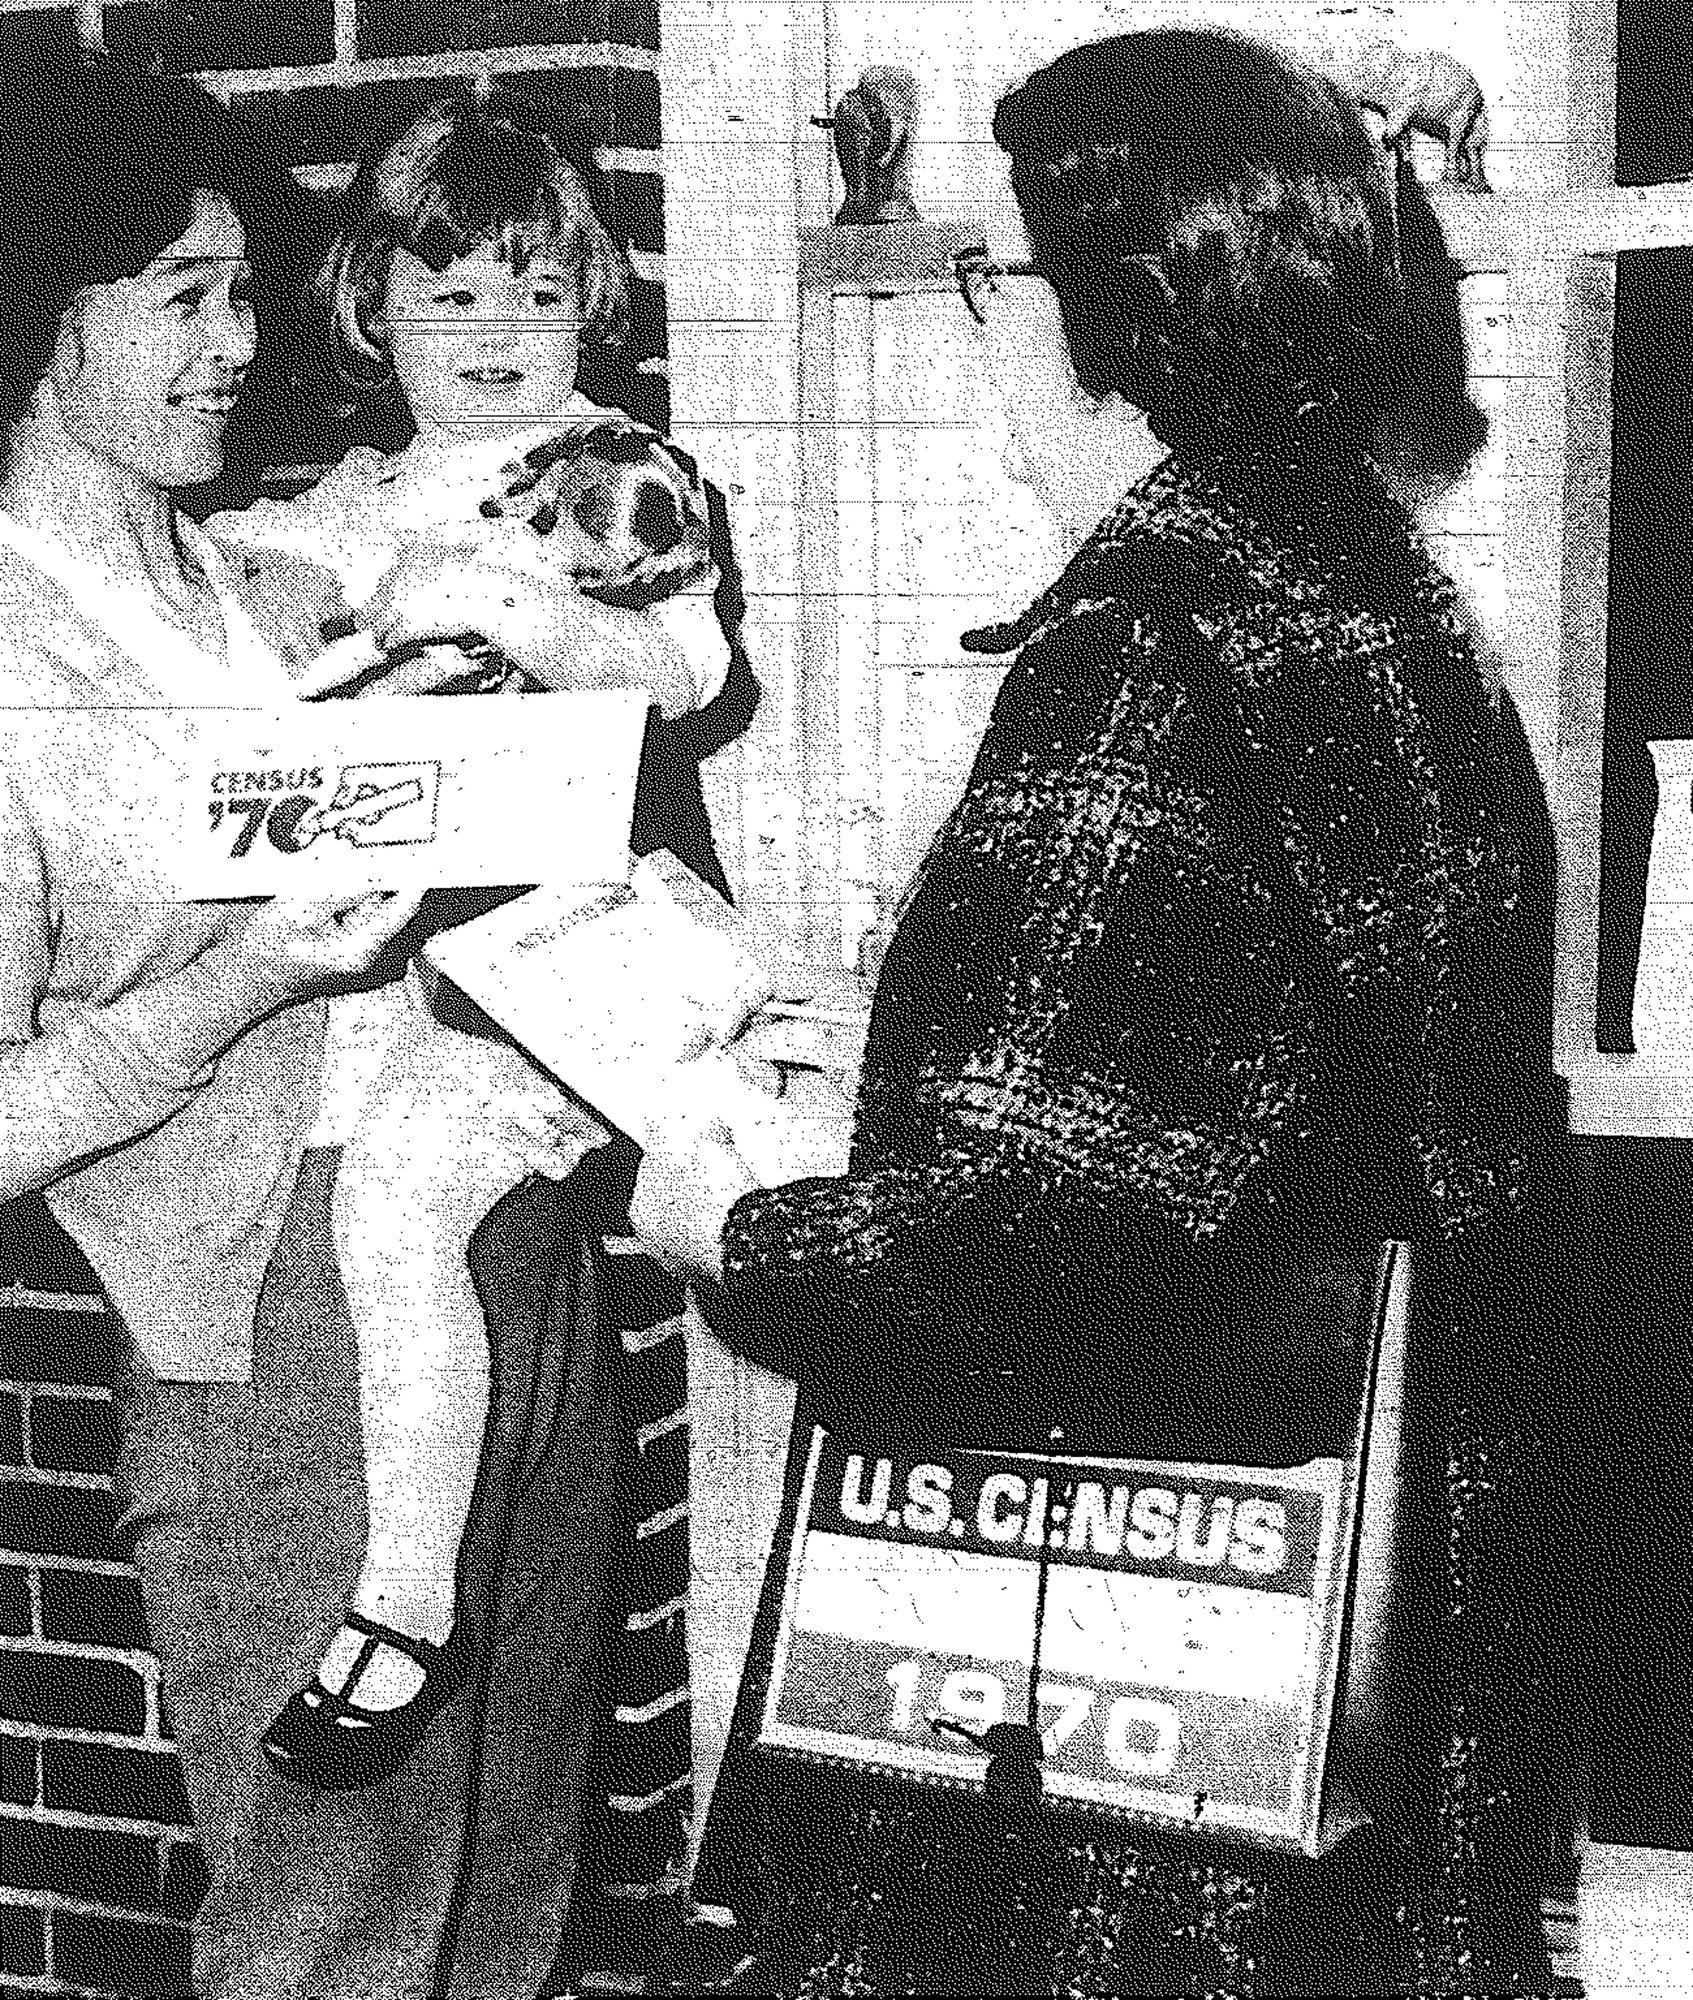 1970 - Mrs. James C. Dennis, one of 18 census workers covering the city in April, collects from Mrs. Mary Tyndall of Victory Drive and her daughter Susanne. The workers were making a block-by-block canvass of the entire city to its corporate limits. They expected to complete their work within three to five weeks.